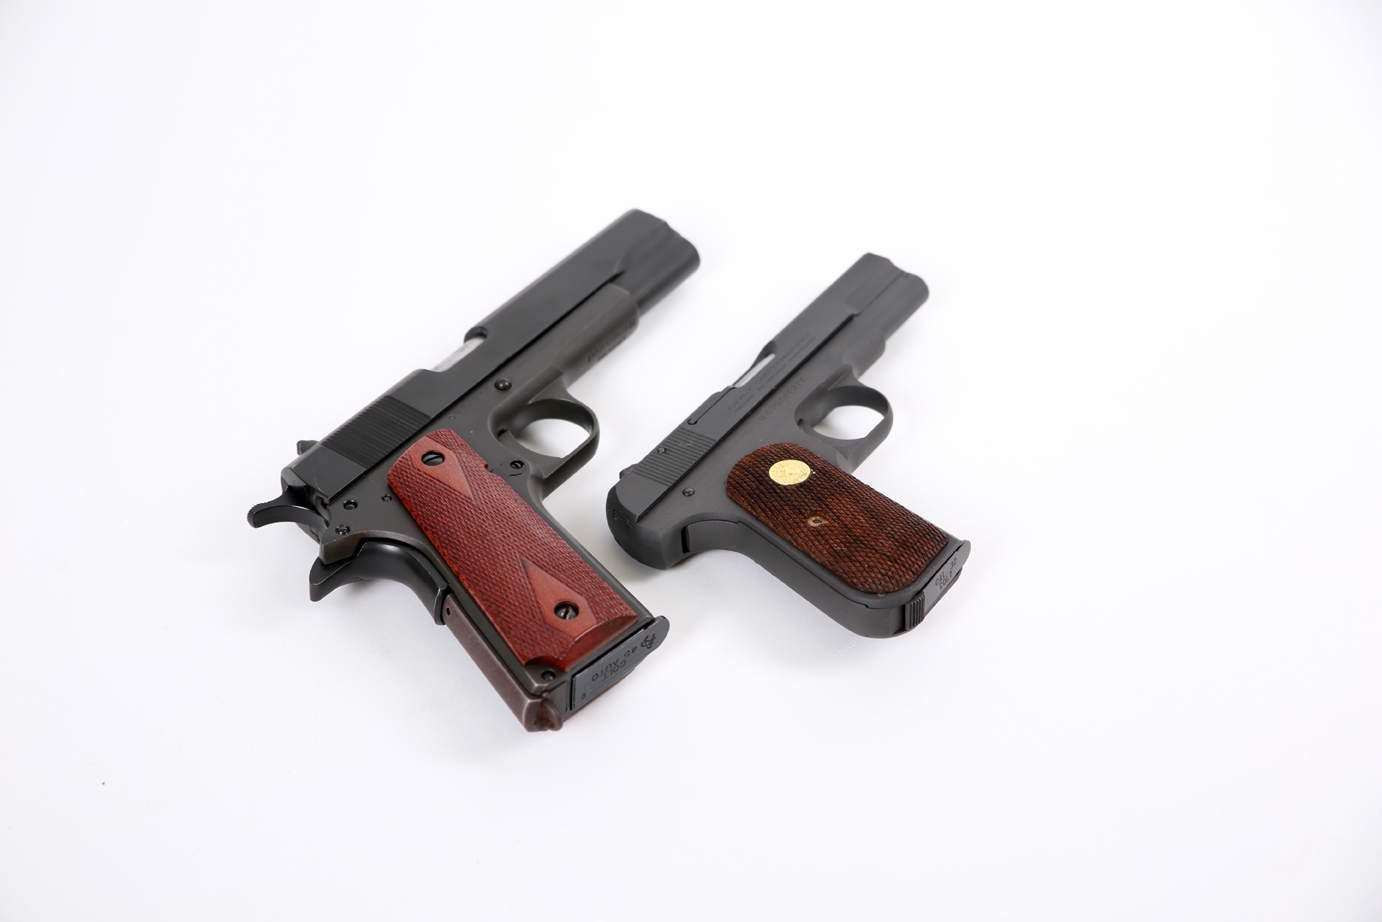 The Colt 1903 .32 compared to a Colt 1911 .45.